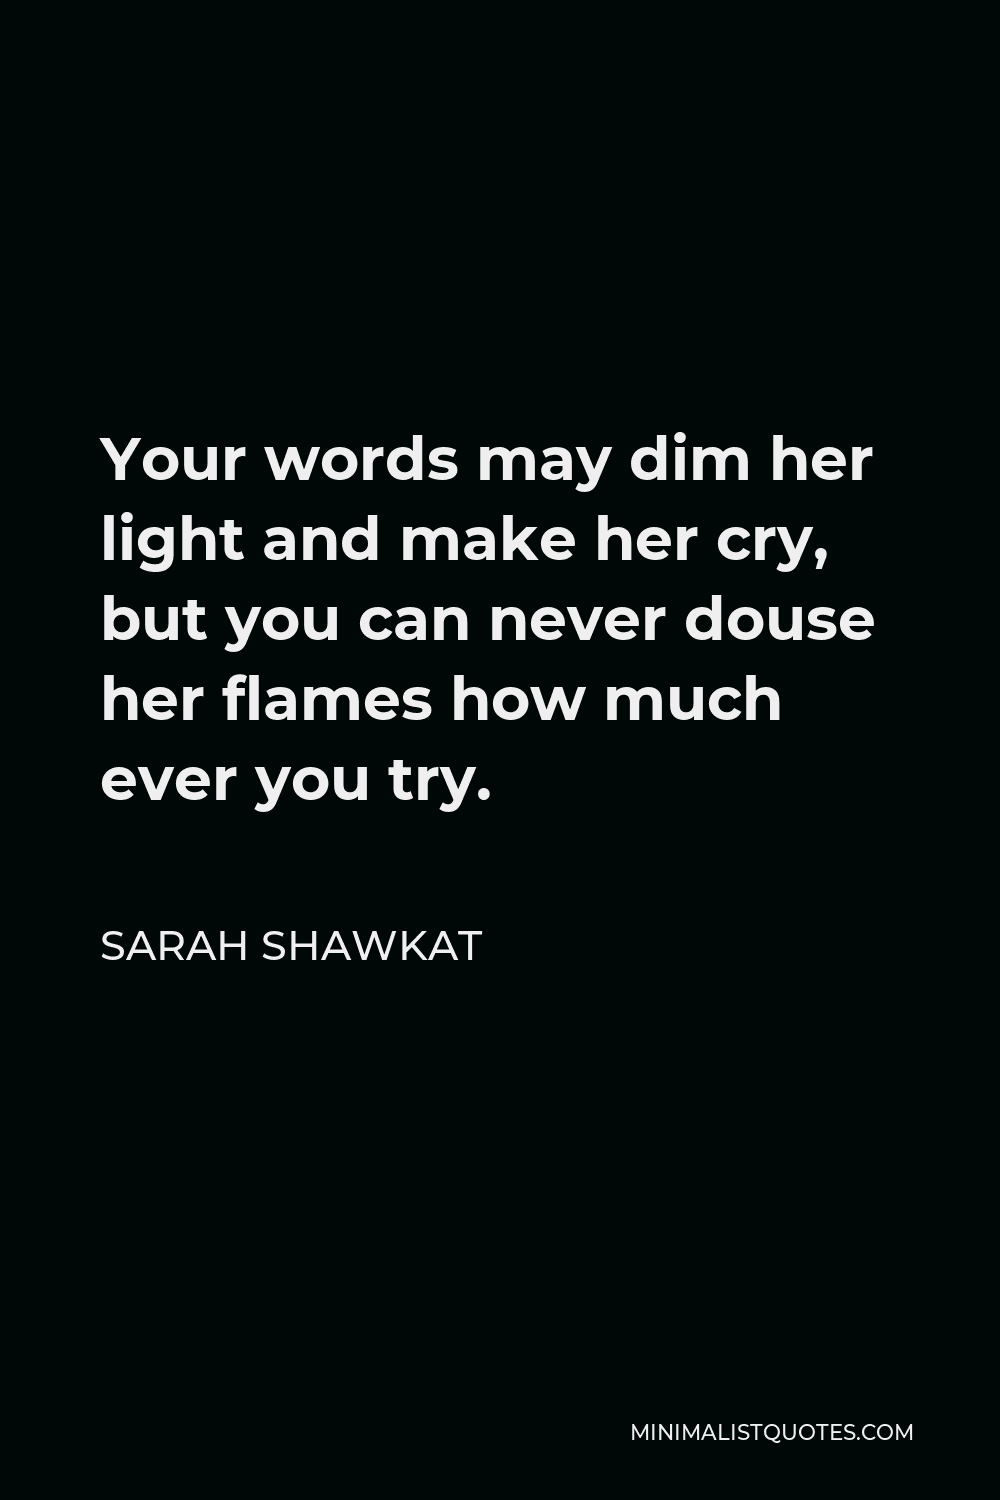 Sarah Shawkat Quote - Your words may dim her light and make her cry, but you can never douse her flames how much ever you try.